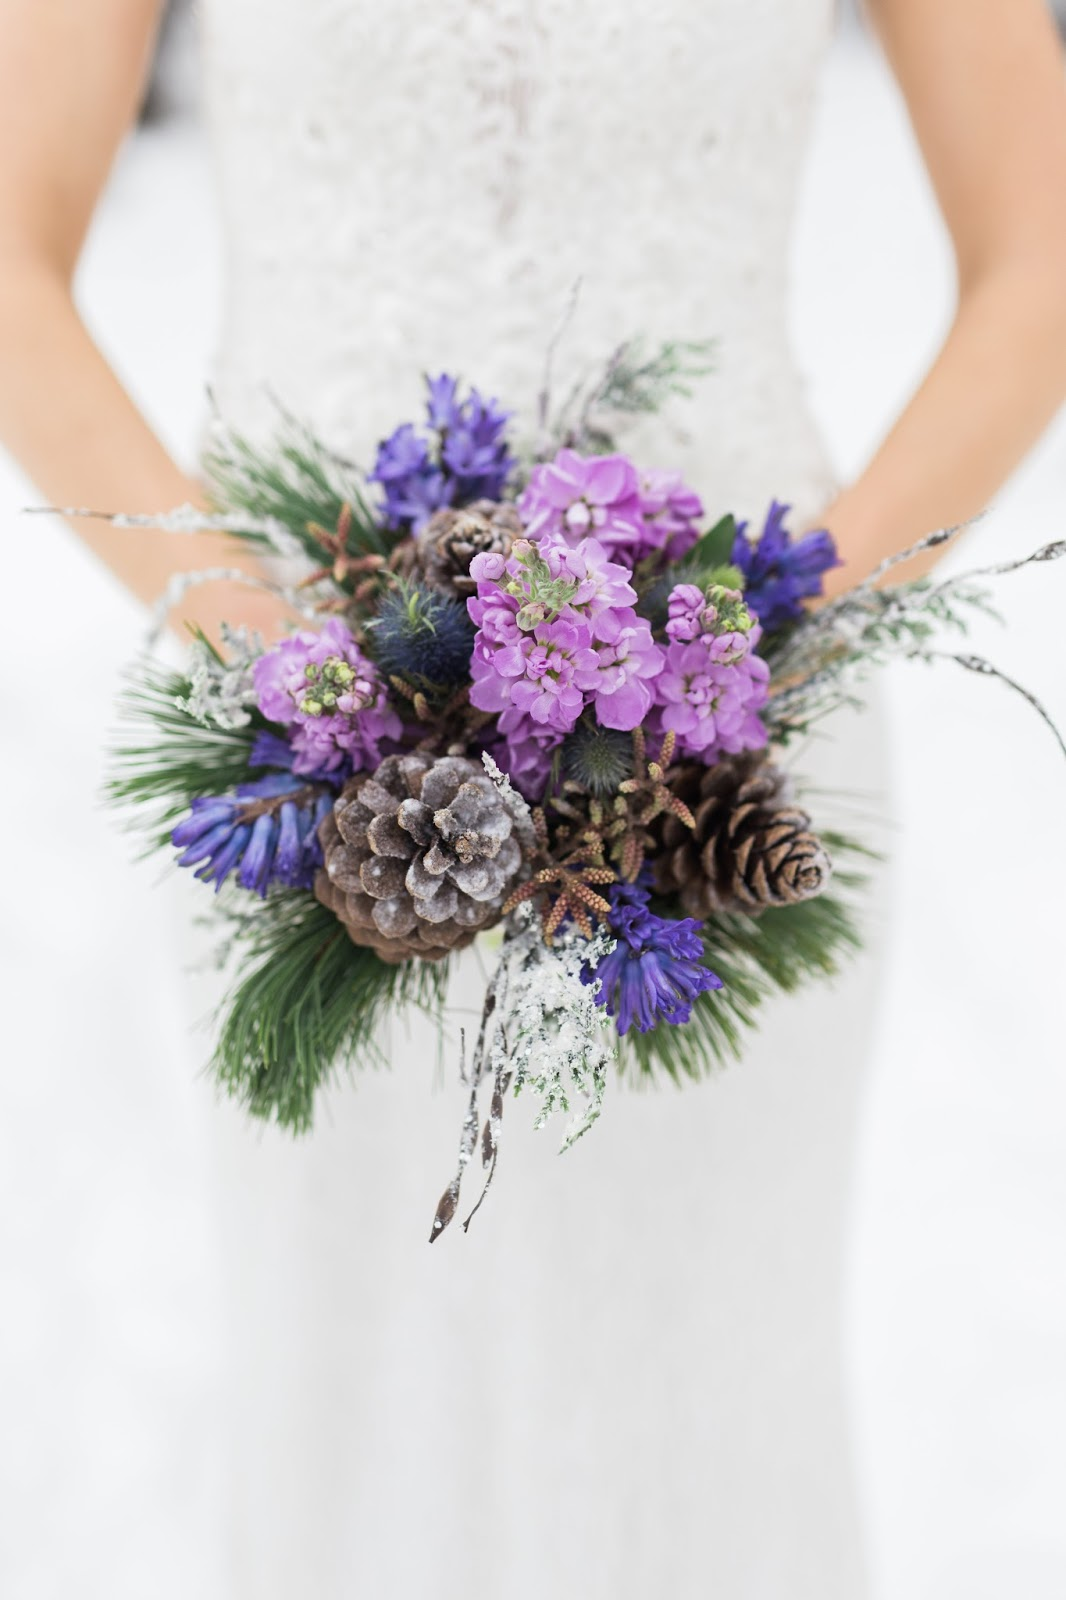 winter wedding flowers, Photography by Dina Remi